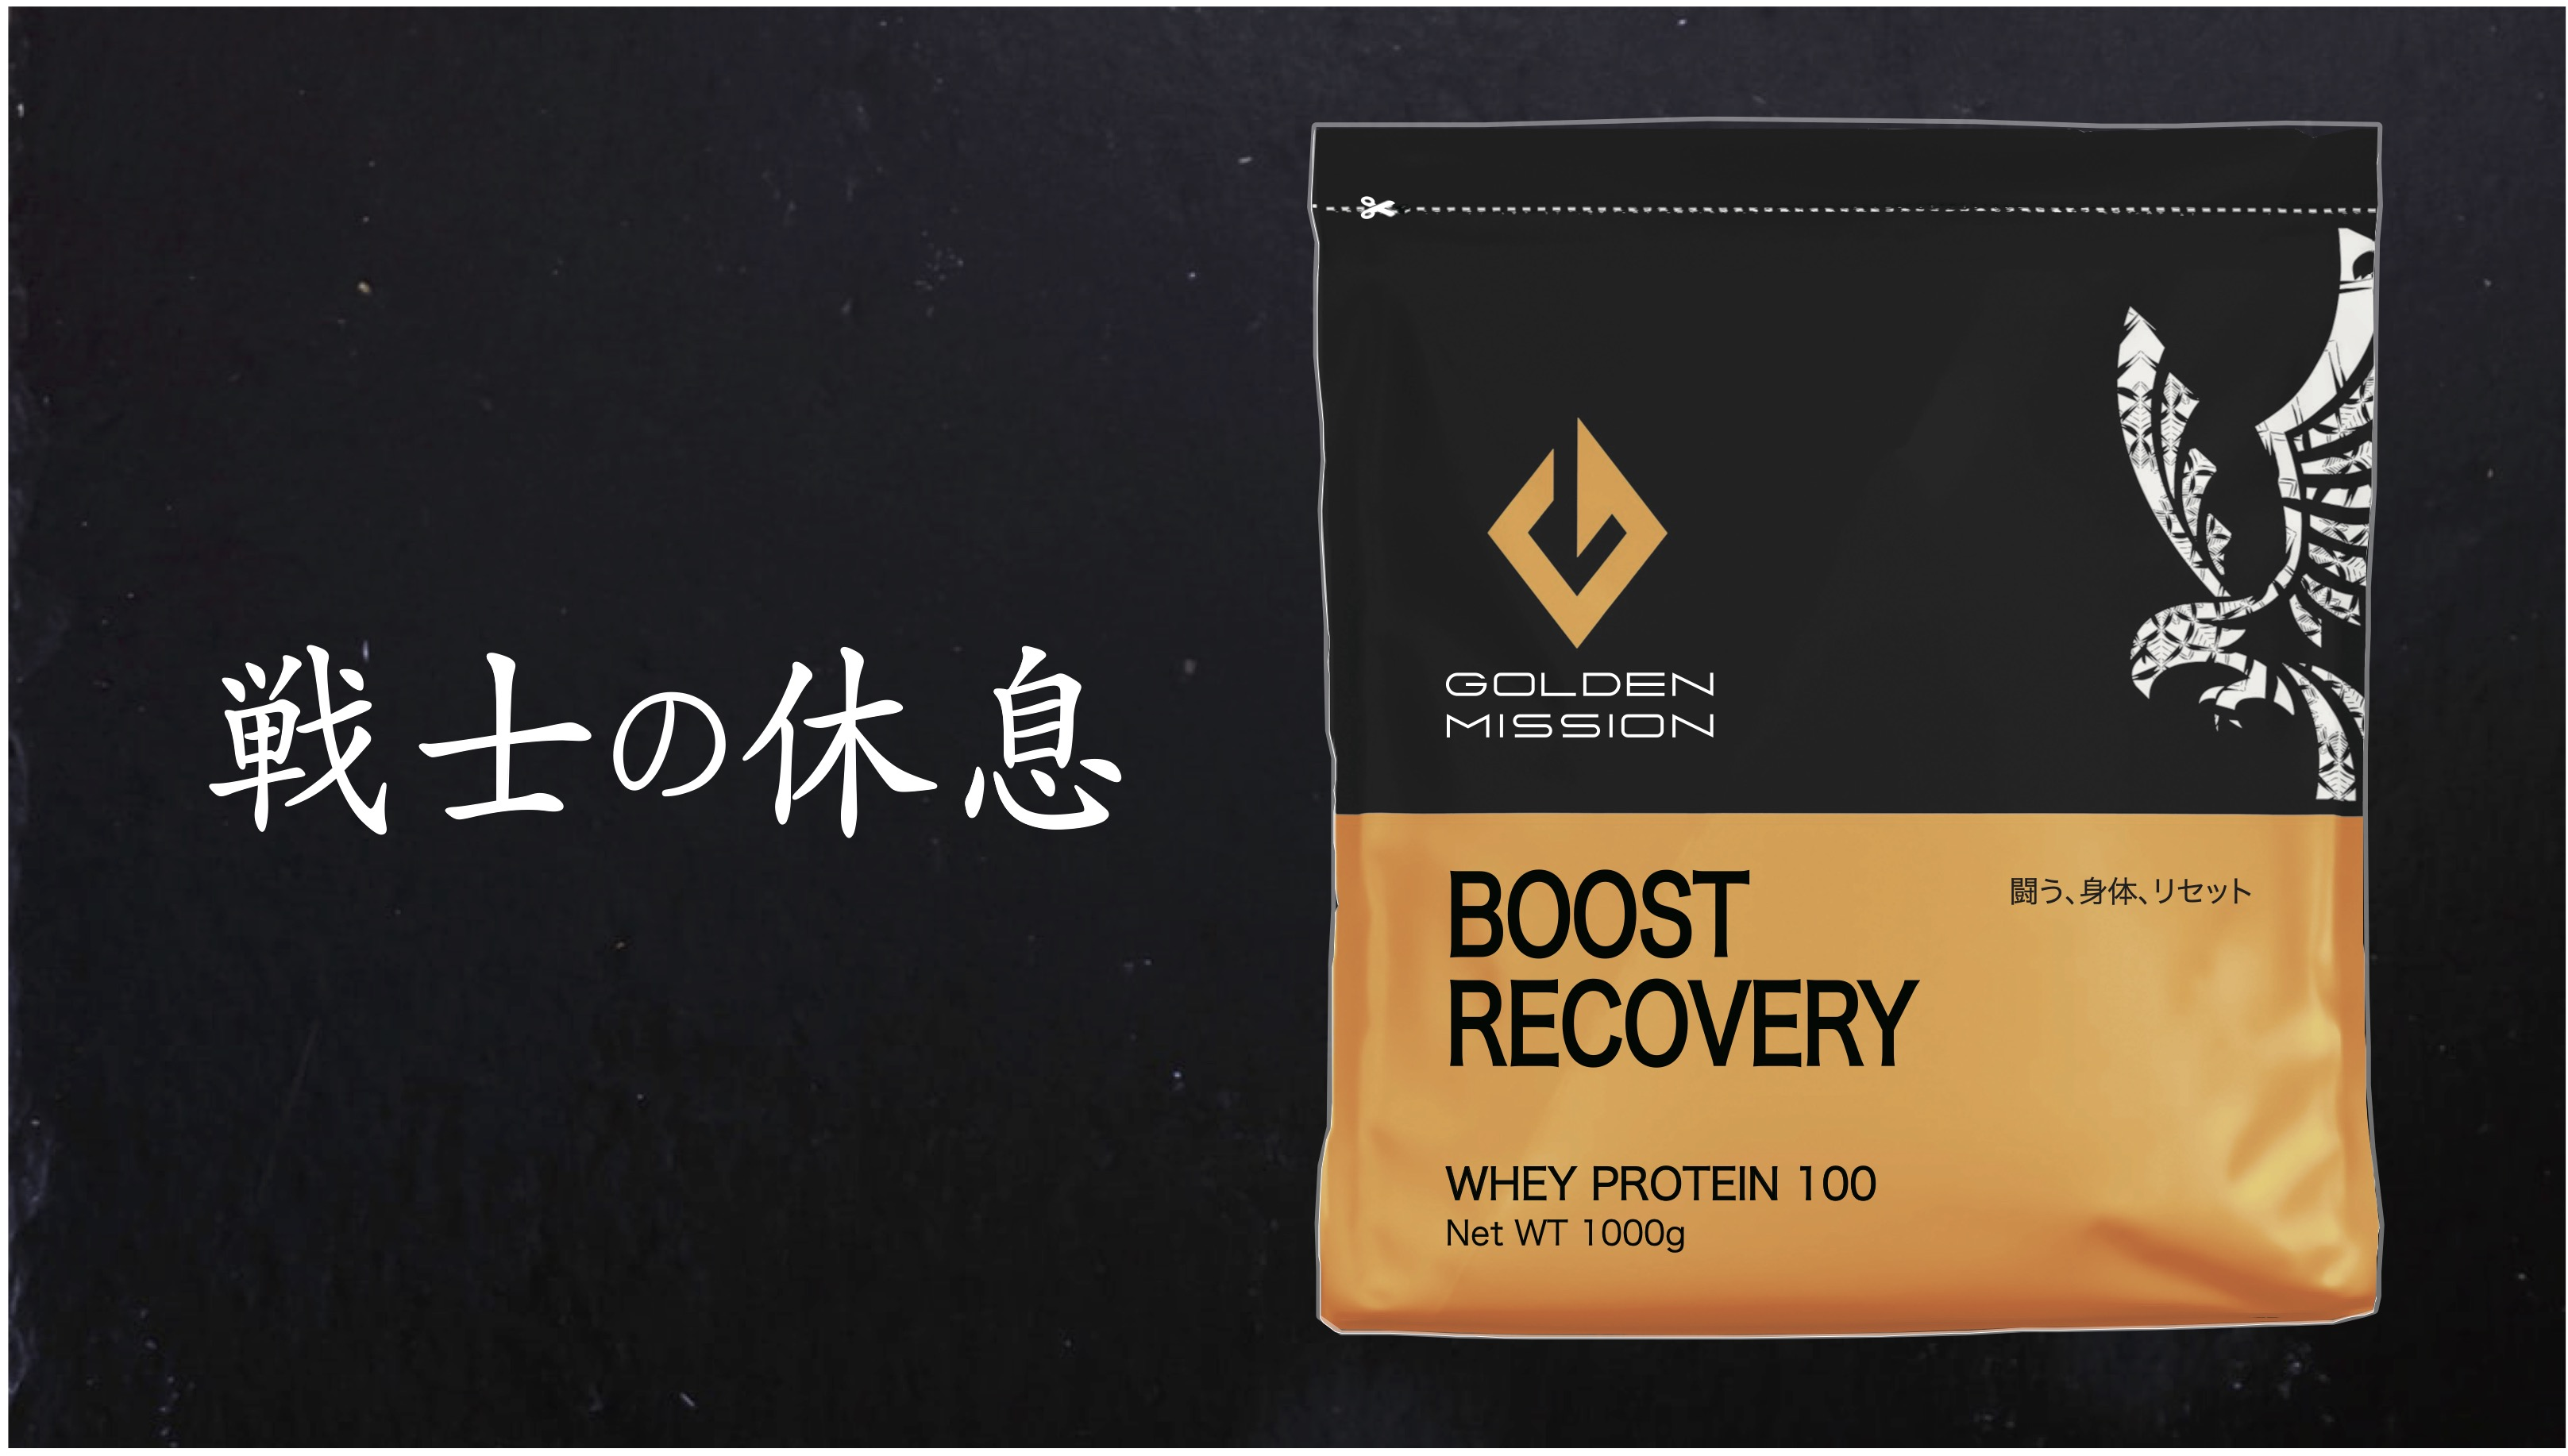 GOLDEN MISSION - BOOST RECOVERY